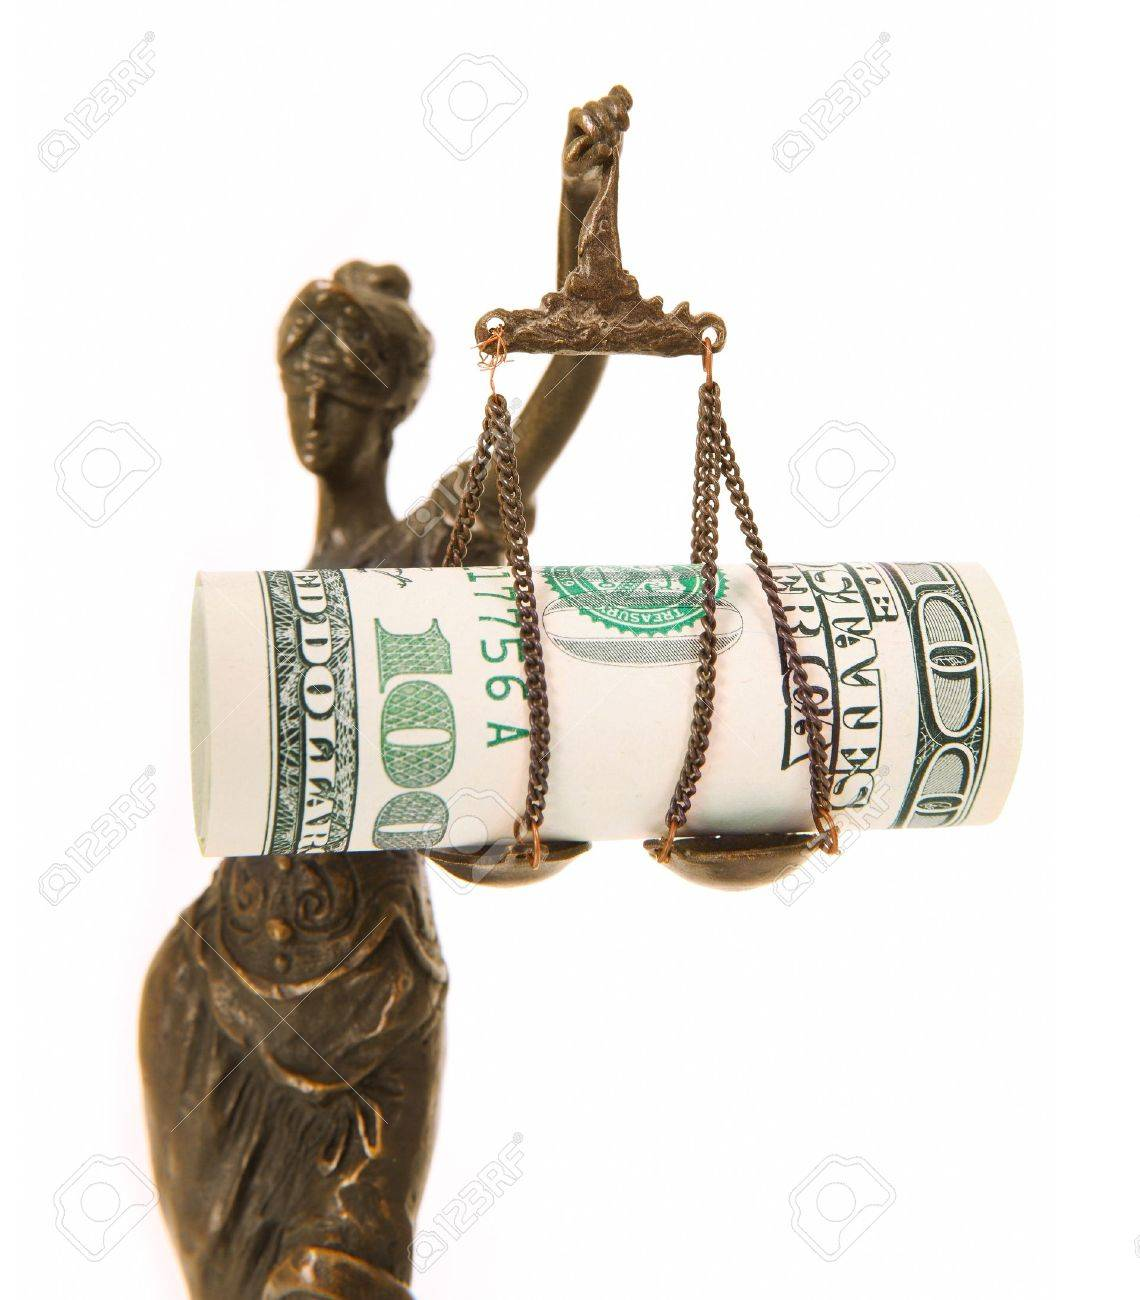 Indian Justice Statue Justice Statue a Picture of